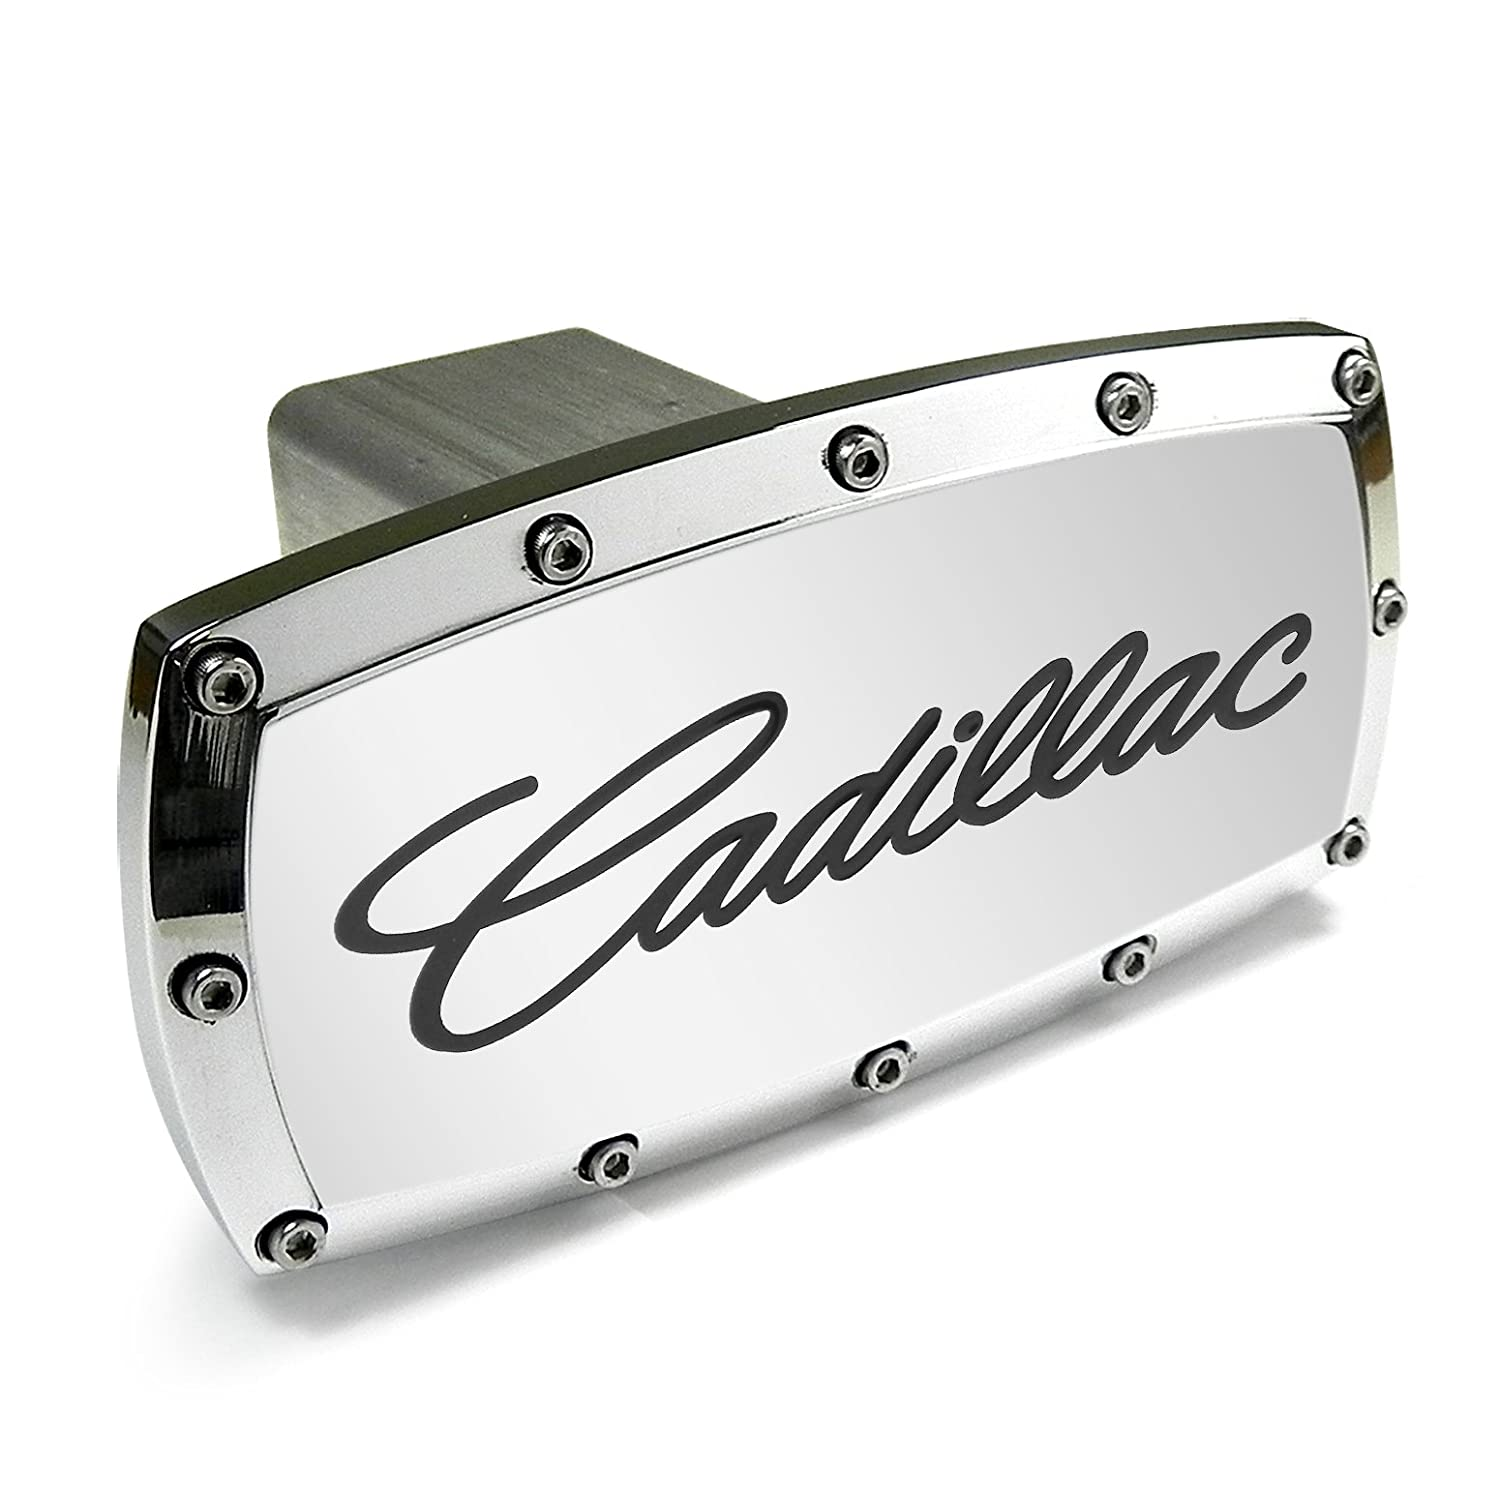 Cadillac Engraved Billet Aluminum Tow Hitch Cover EL